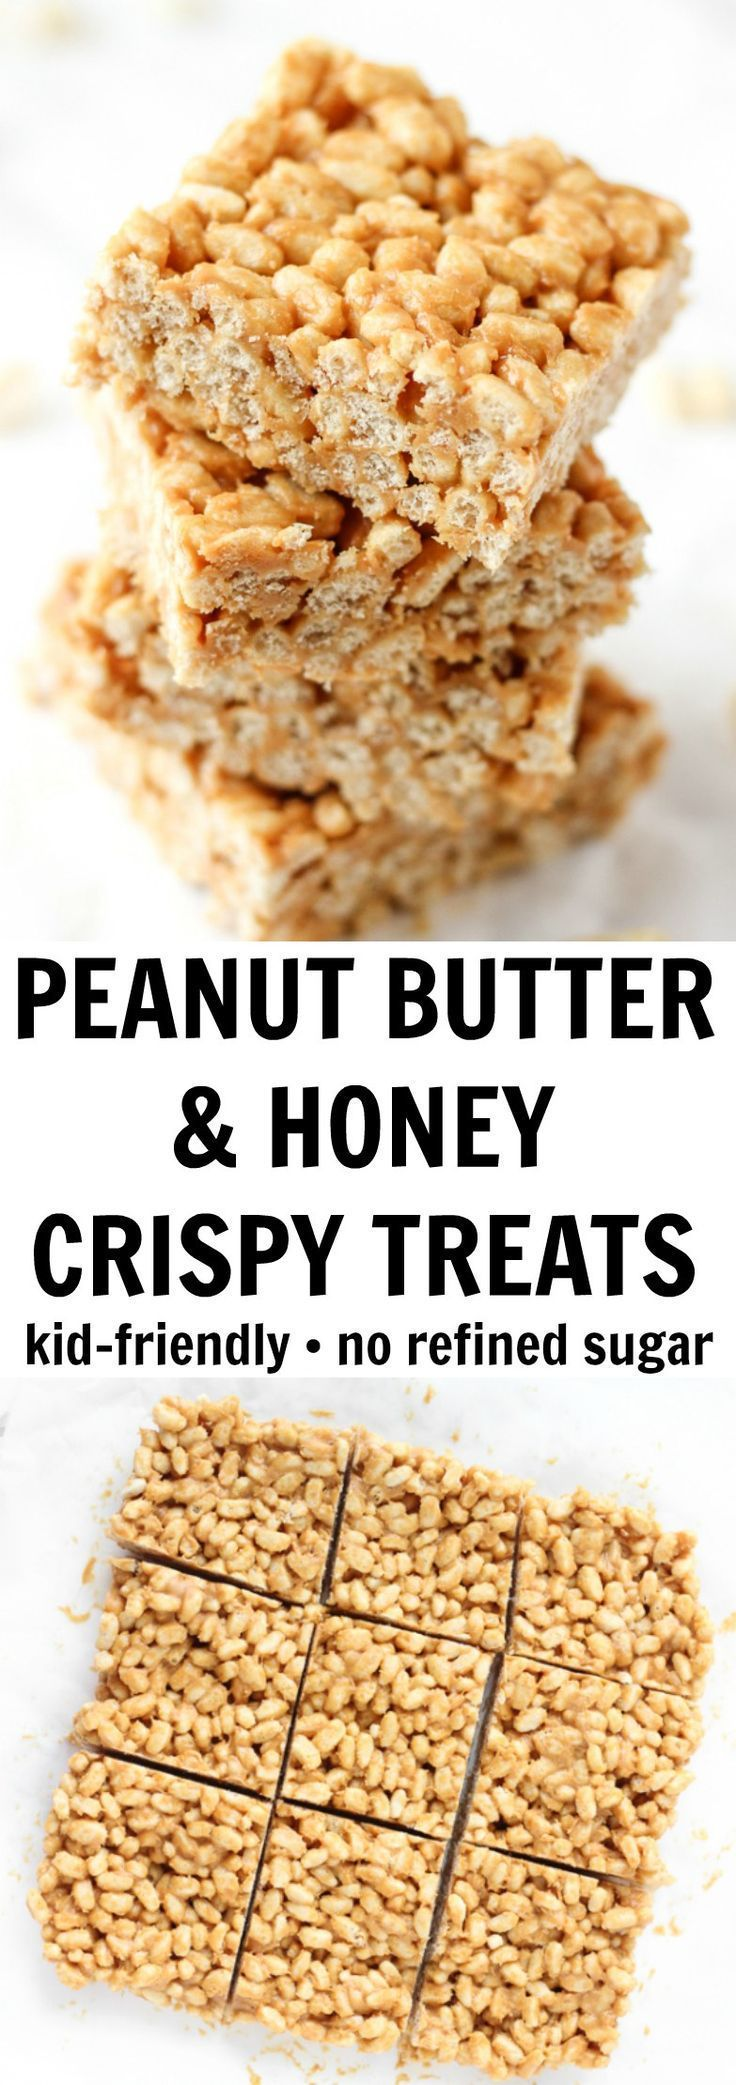 These peanut butter crispy treats have NO refined sugar and just three simple ingredients! #crispytreats